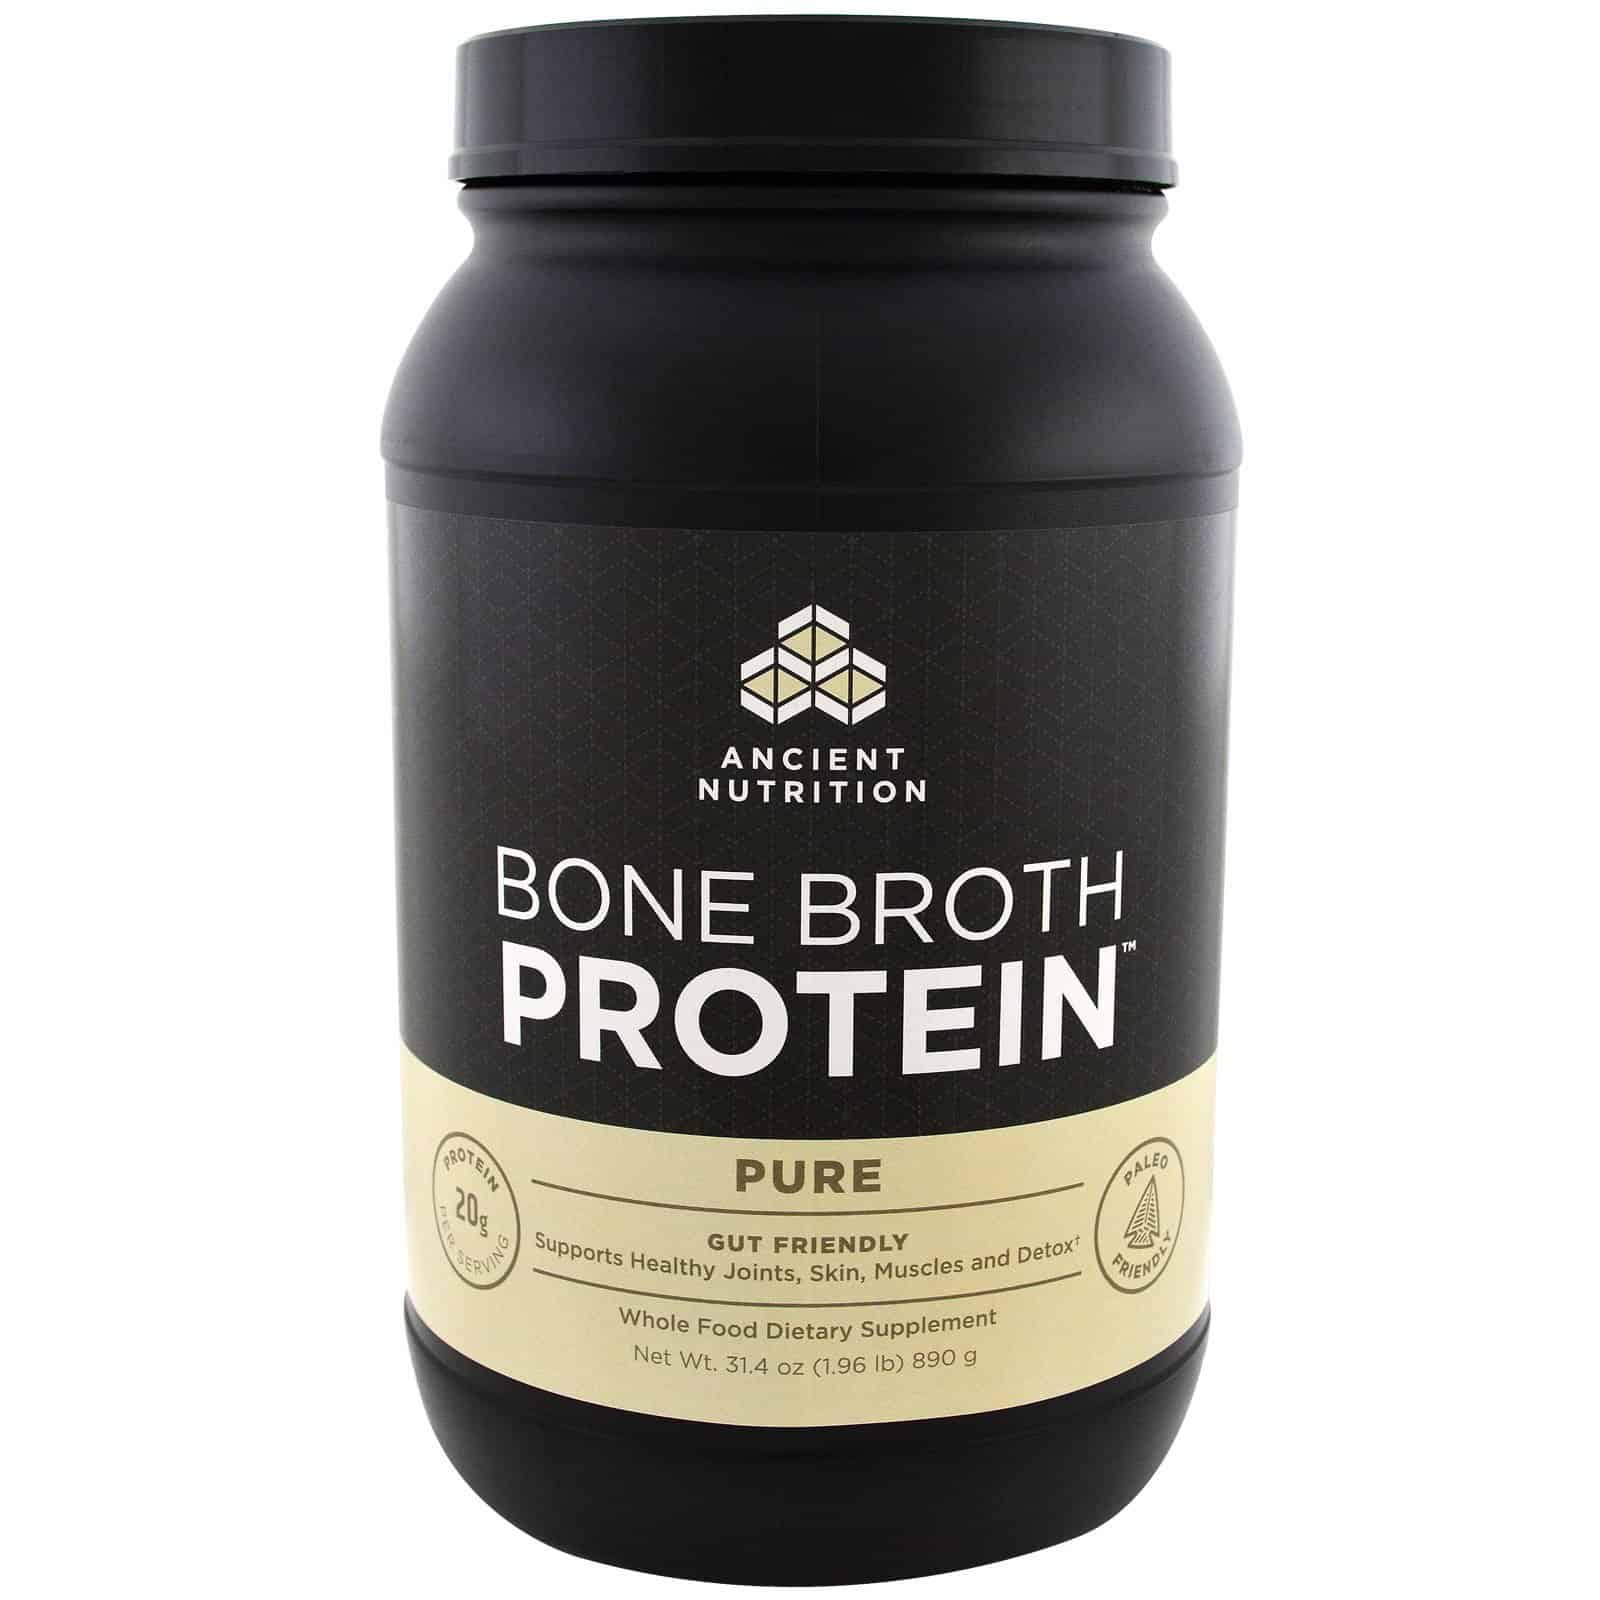 Ancient Nutrition Bone Broth Review – Is It Good for You?